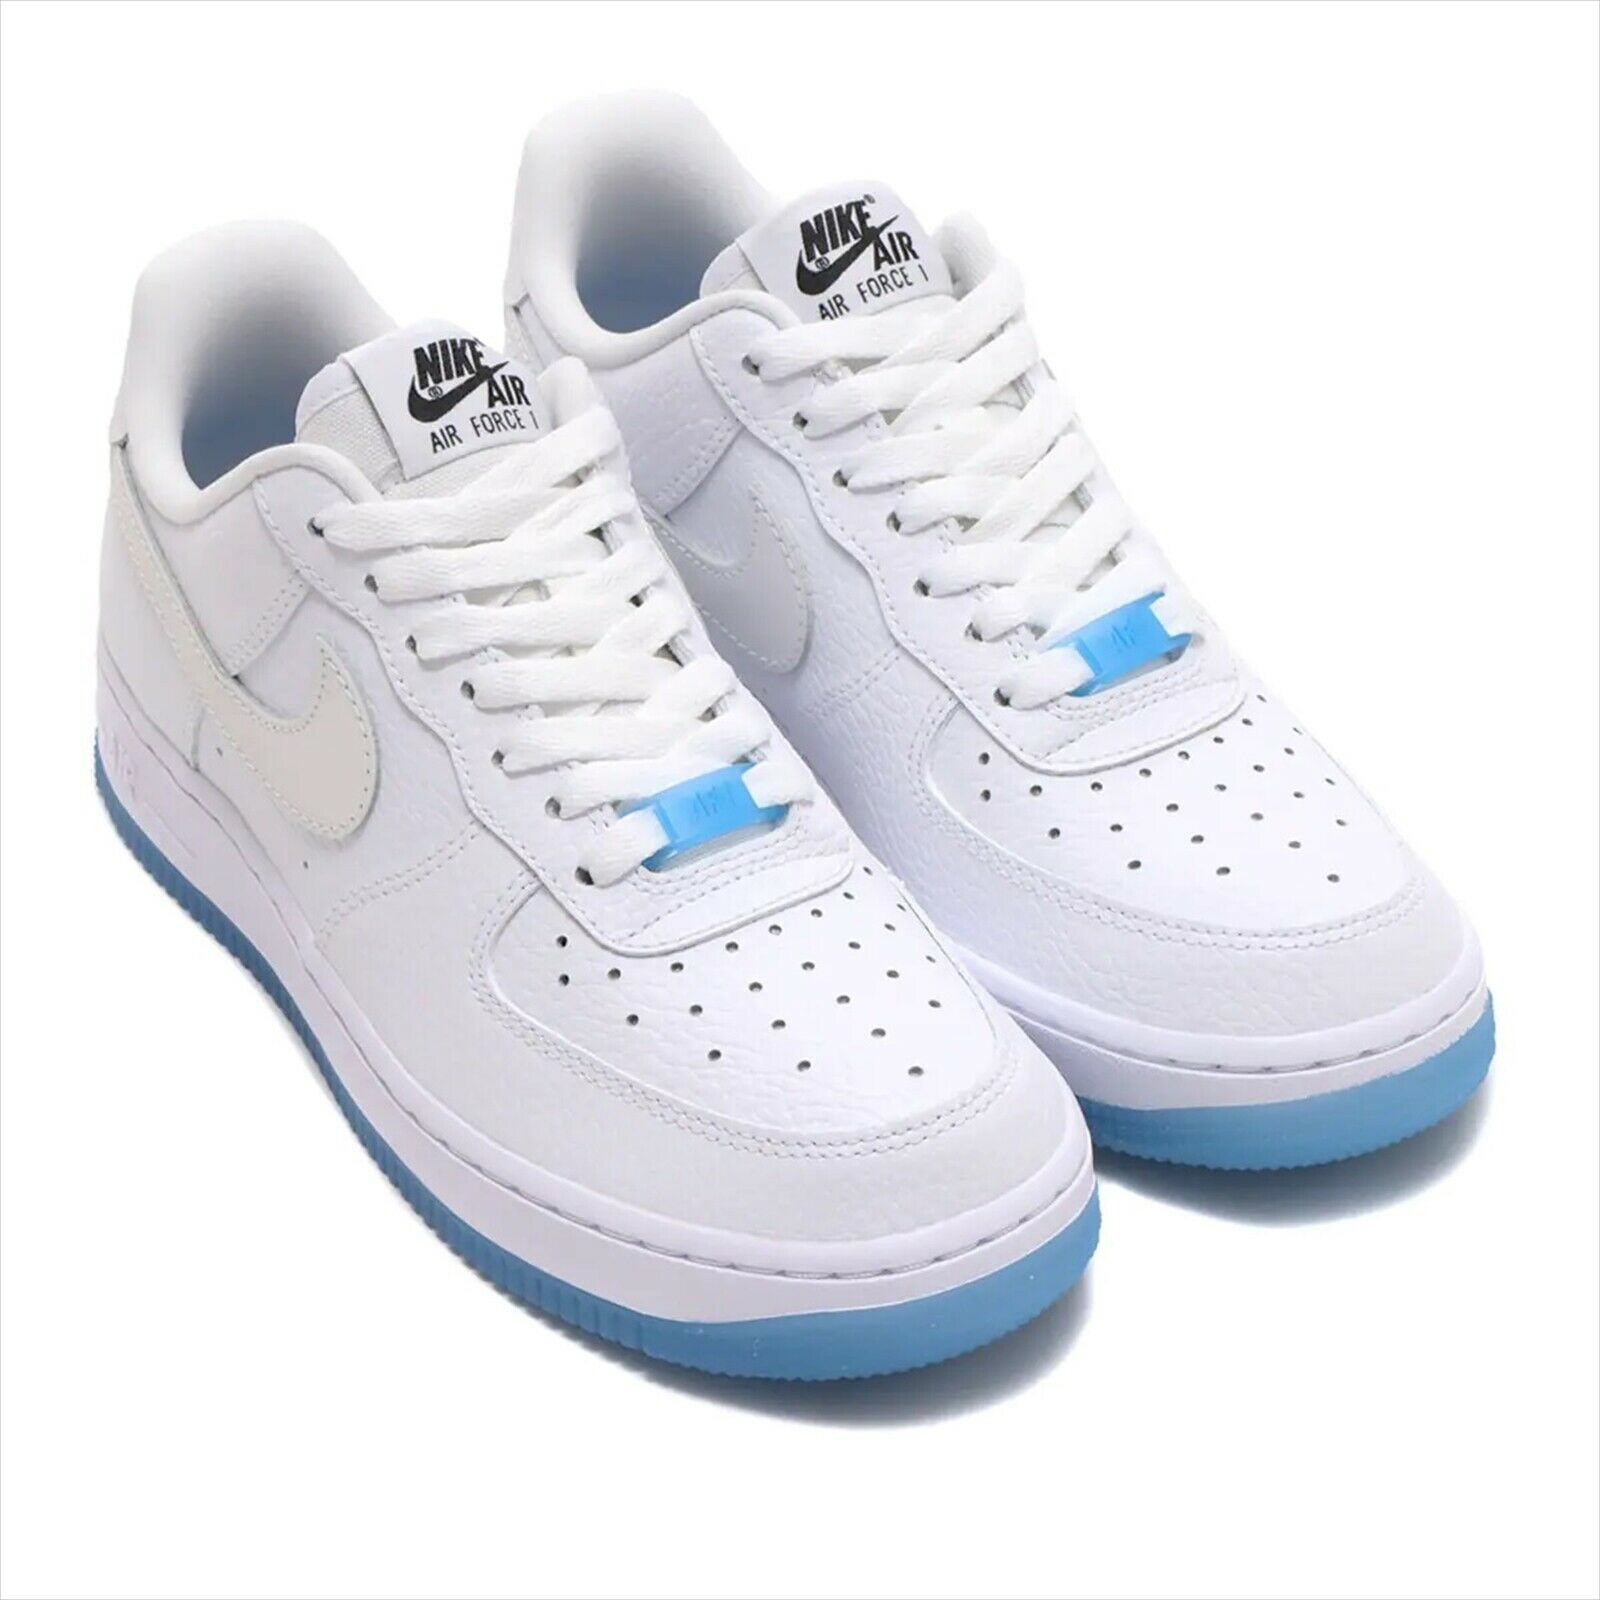 Size 6 - Nike Air Force 1 Low UV Reactive Swoosh for sale online ...